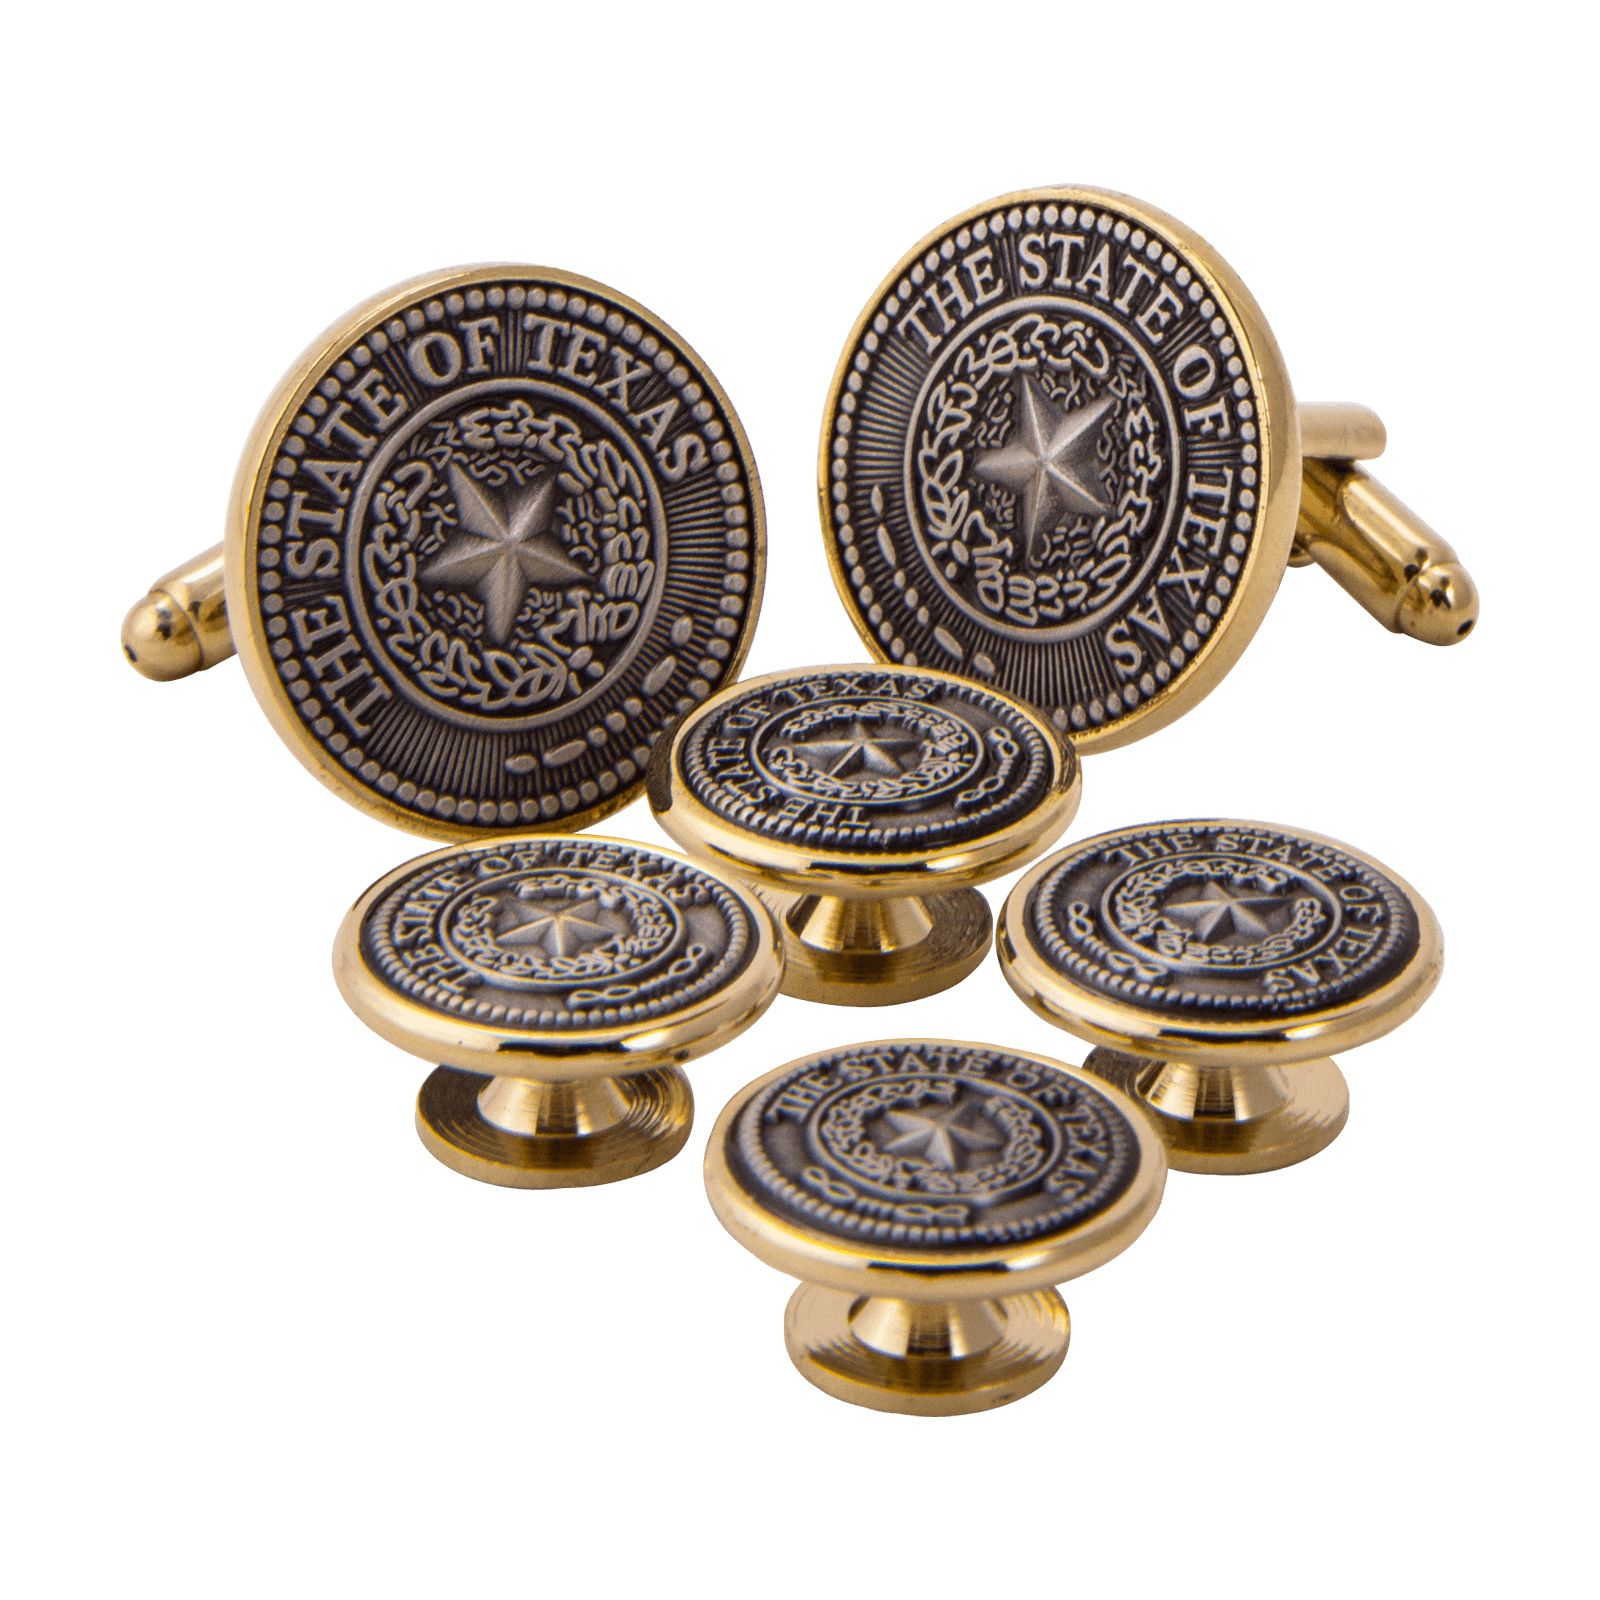 Texas State Seal Pewter and Gold Tone Tuxedo Set